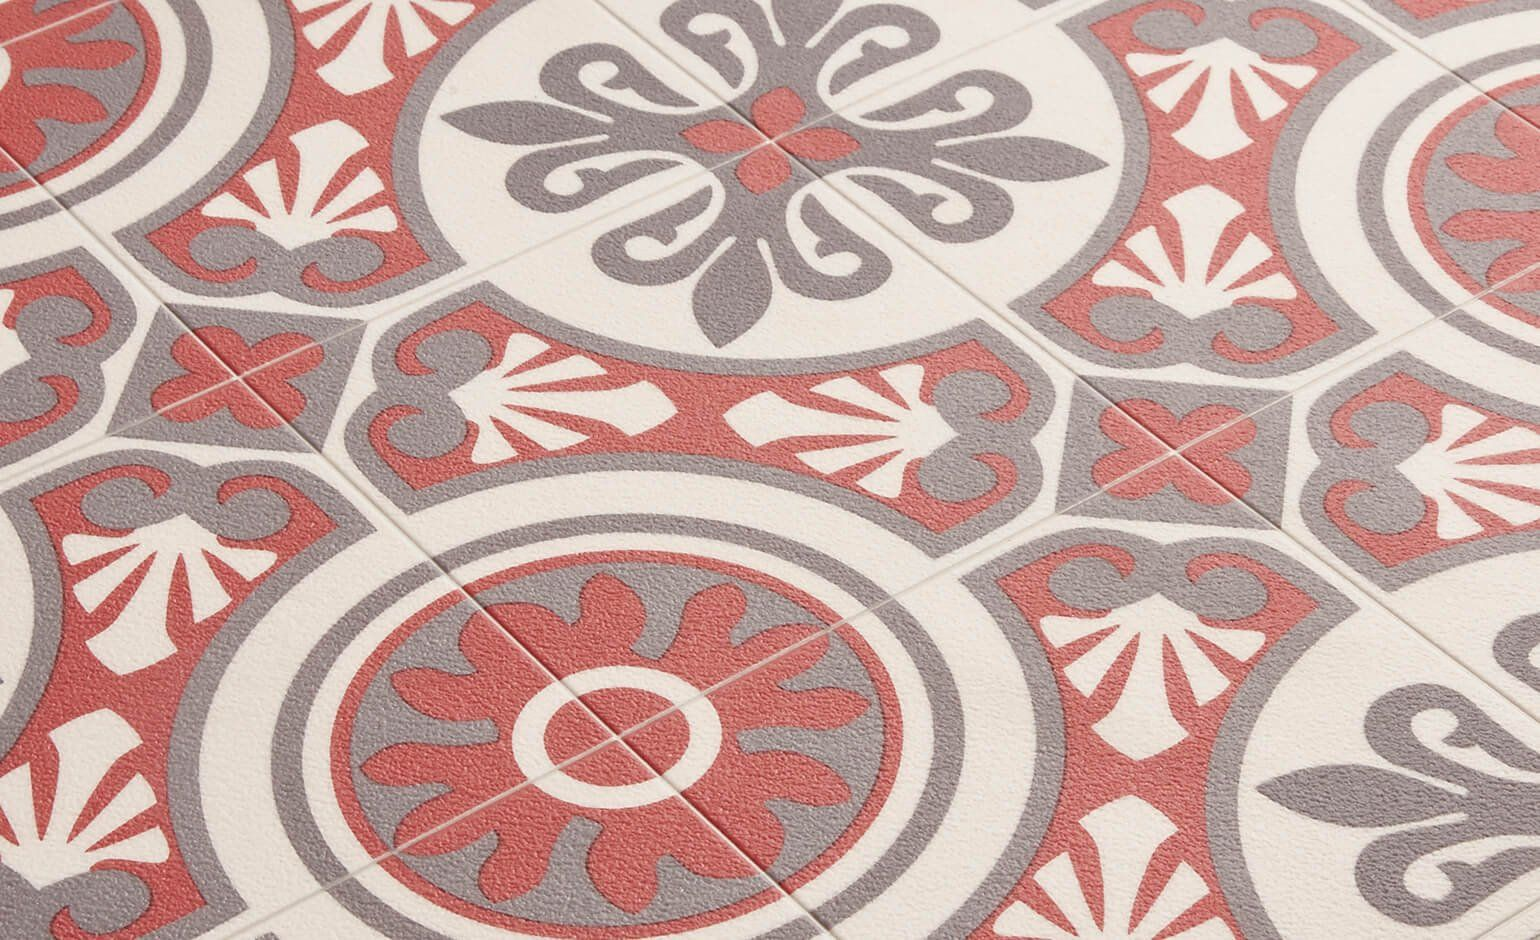 Tapis Lino Carreaux De Ciment Sol Vinyle Emotion Carreau Ciment Rouge Et Gris Rouleau